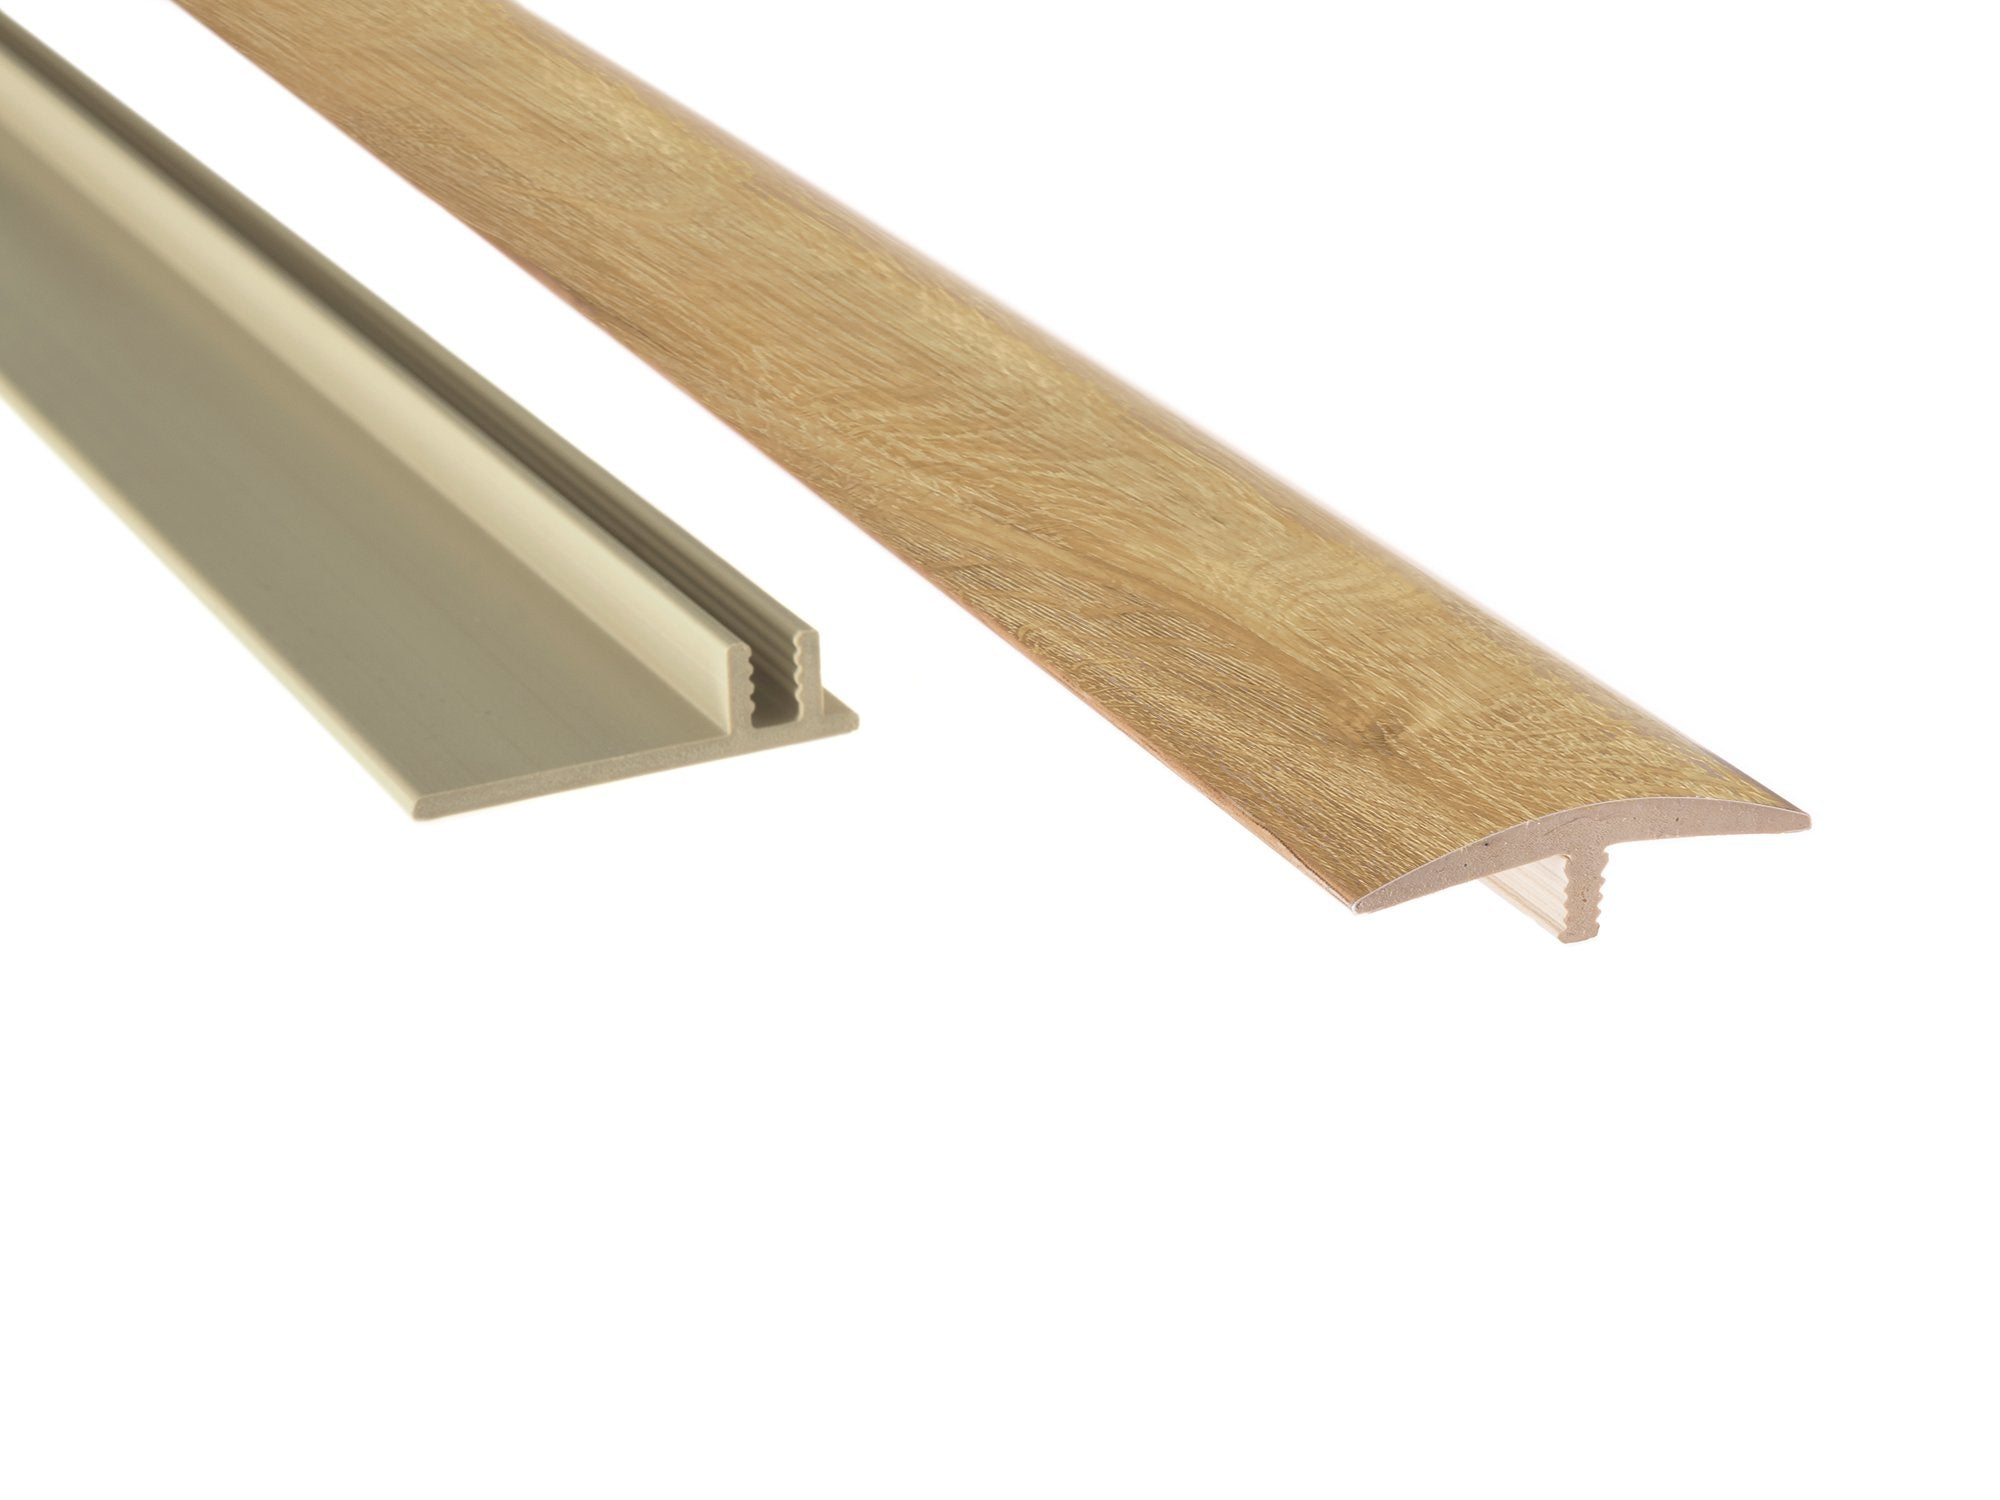 46 in. T-Molding Transition Strip